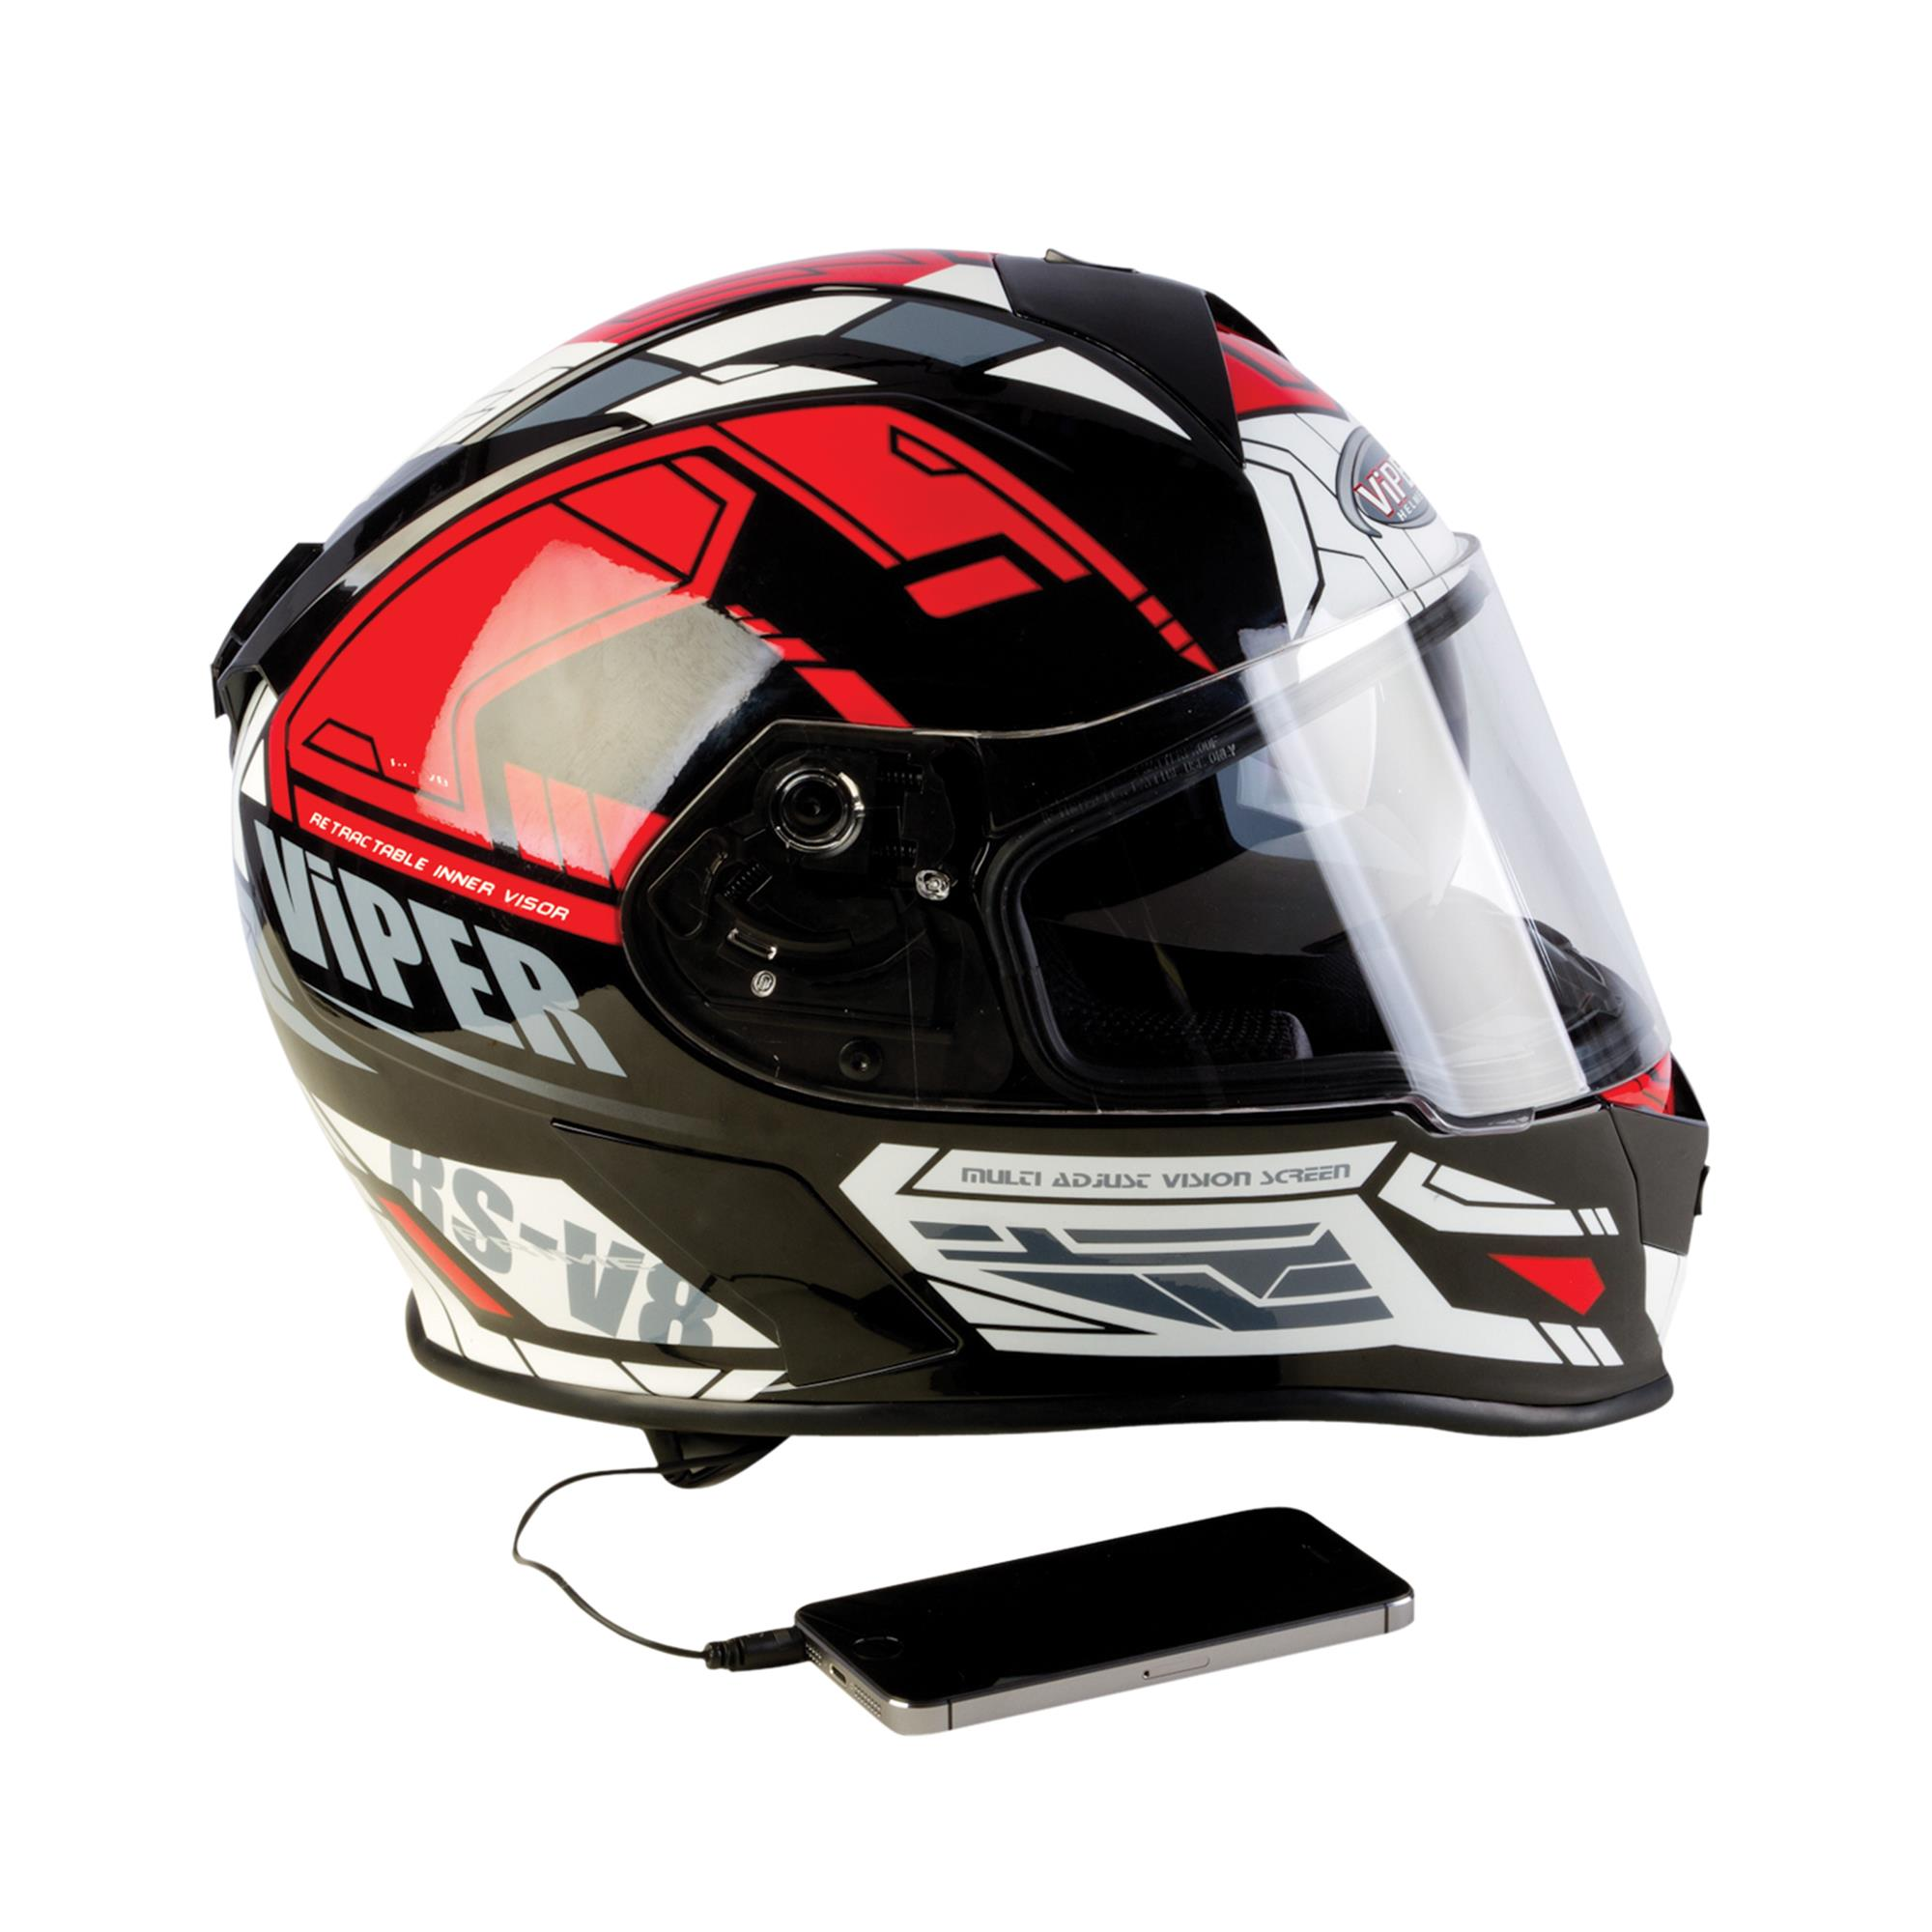 FULL FACE HELMETS WITH SPEAKERS